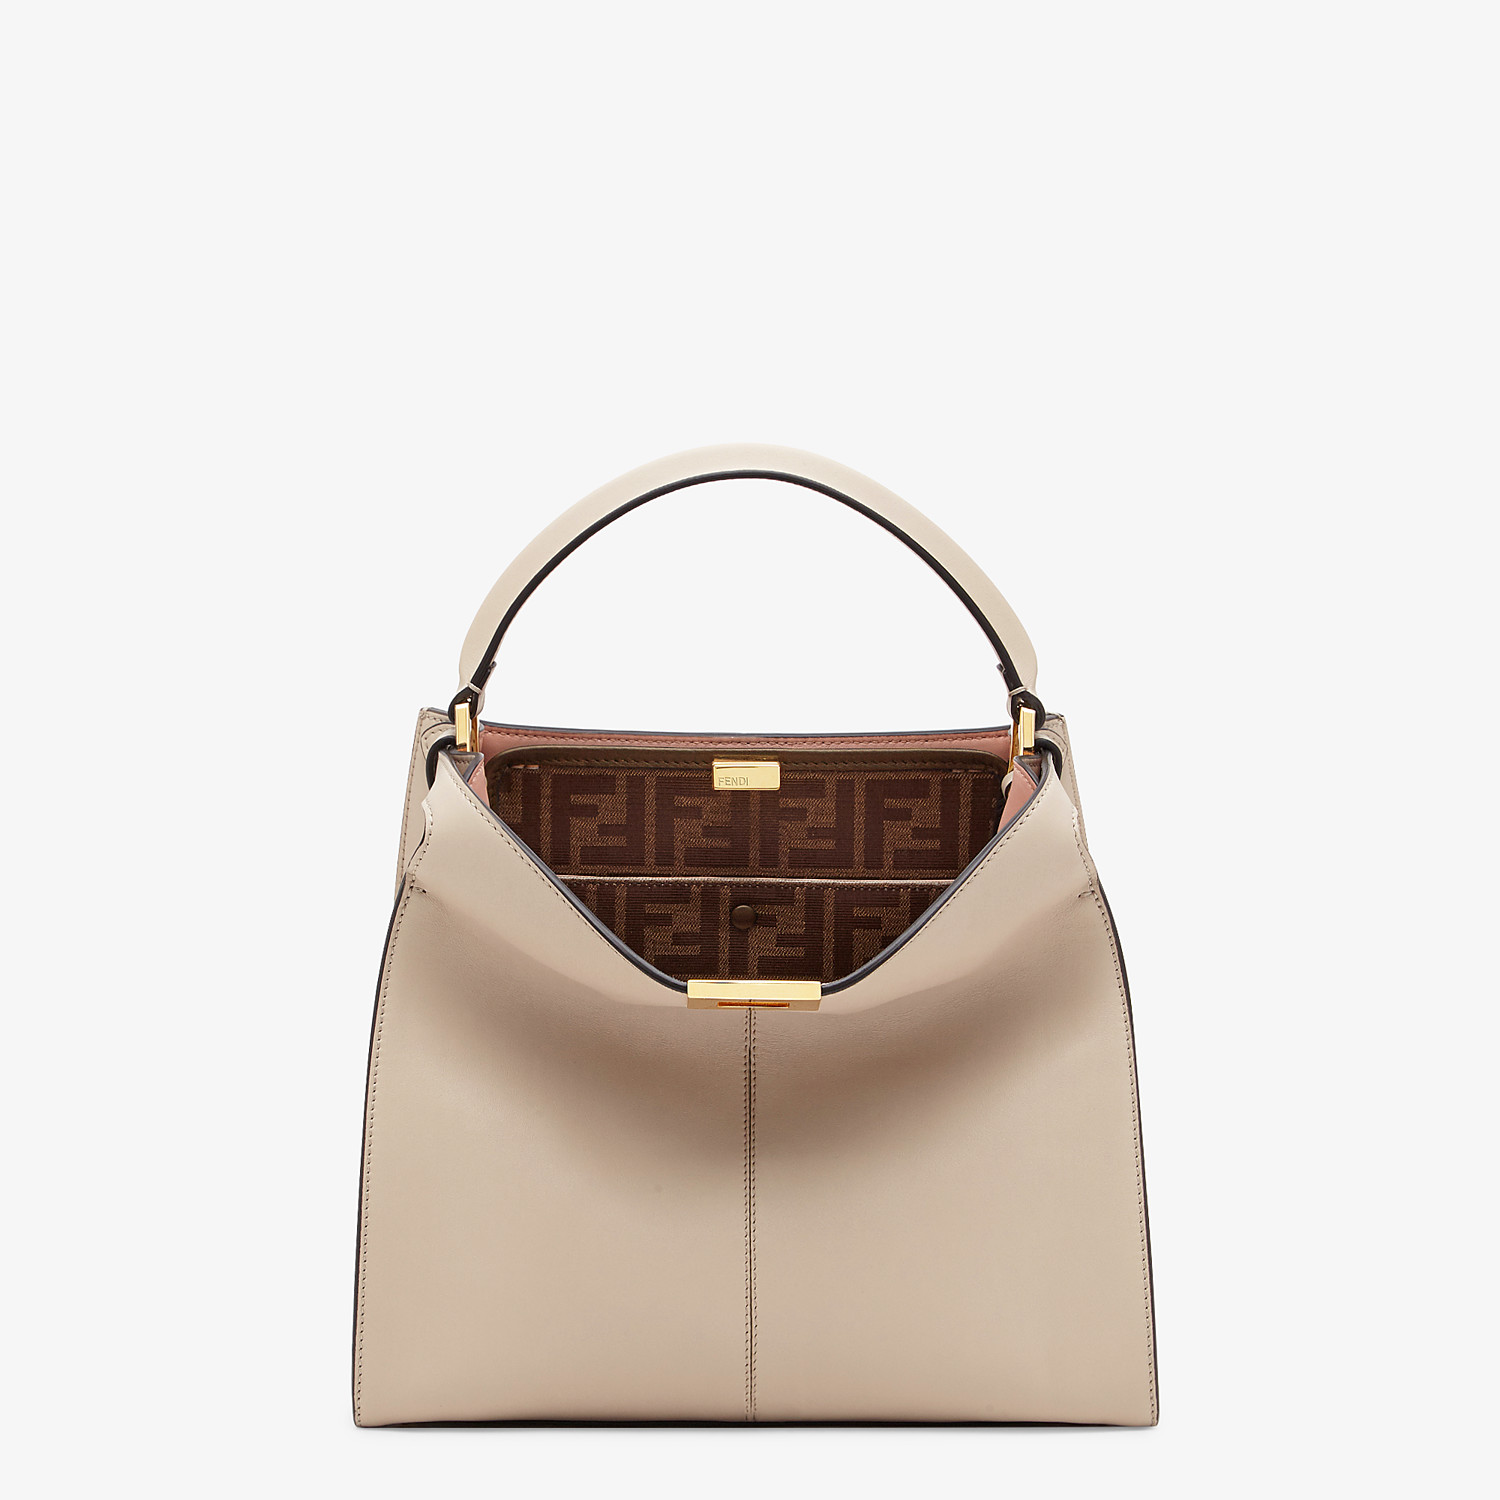 FENDI MEDIUM PEEKABOO X-LITE - Beige leather bag - view 2 detail